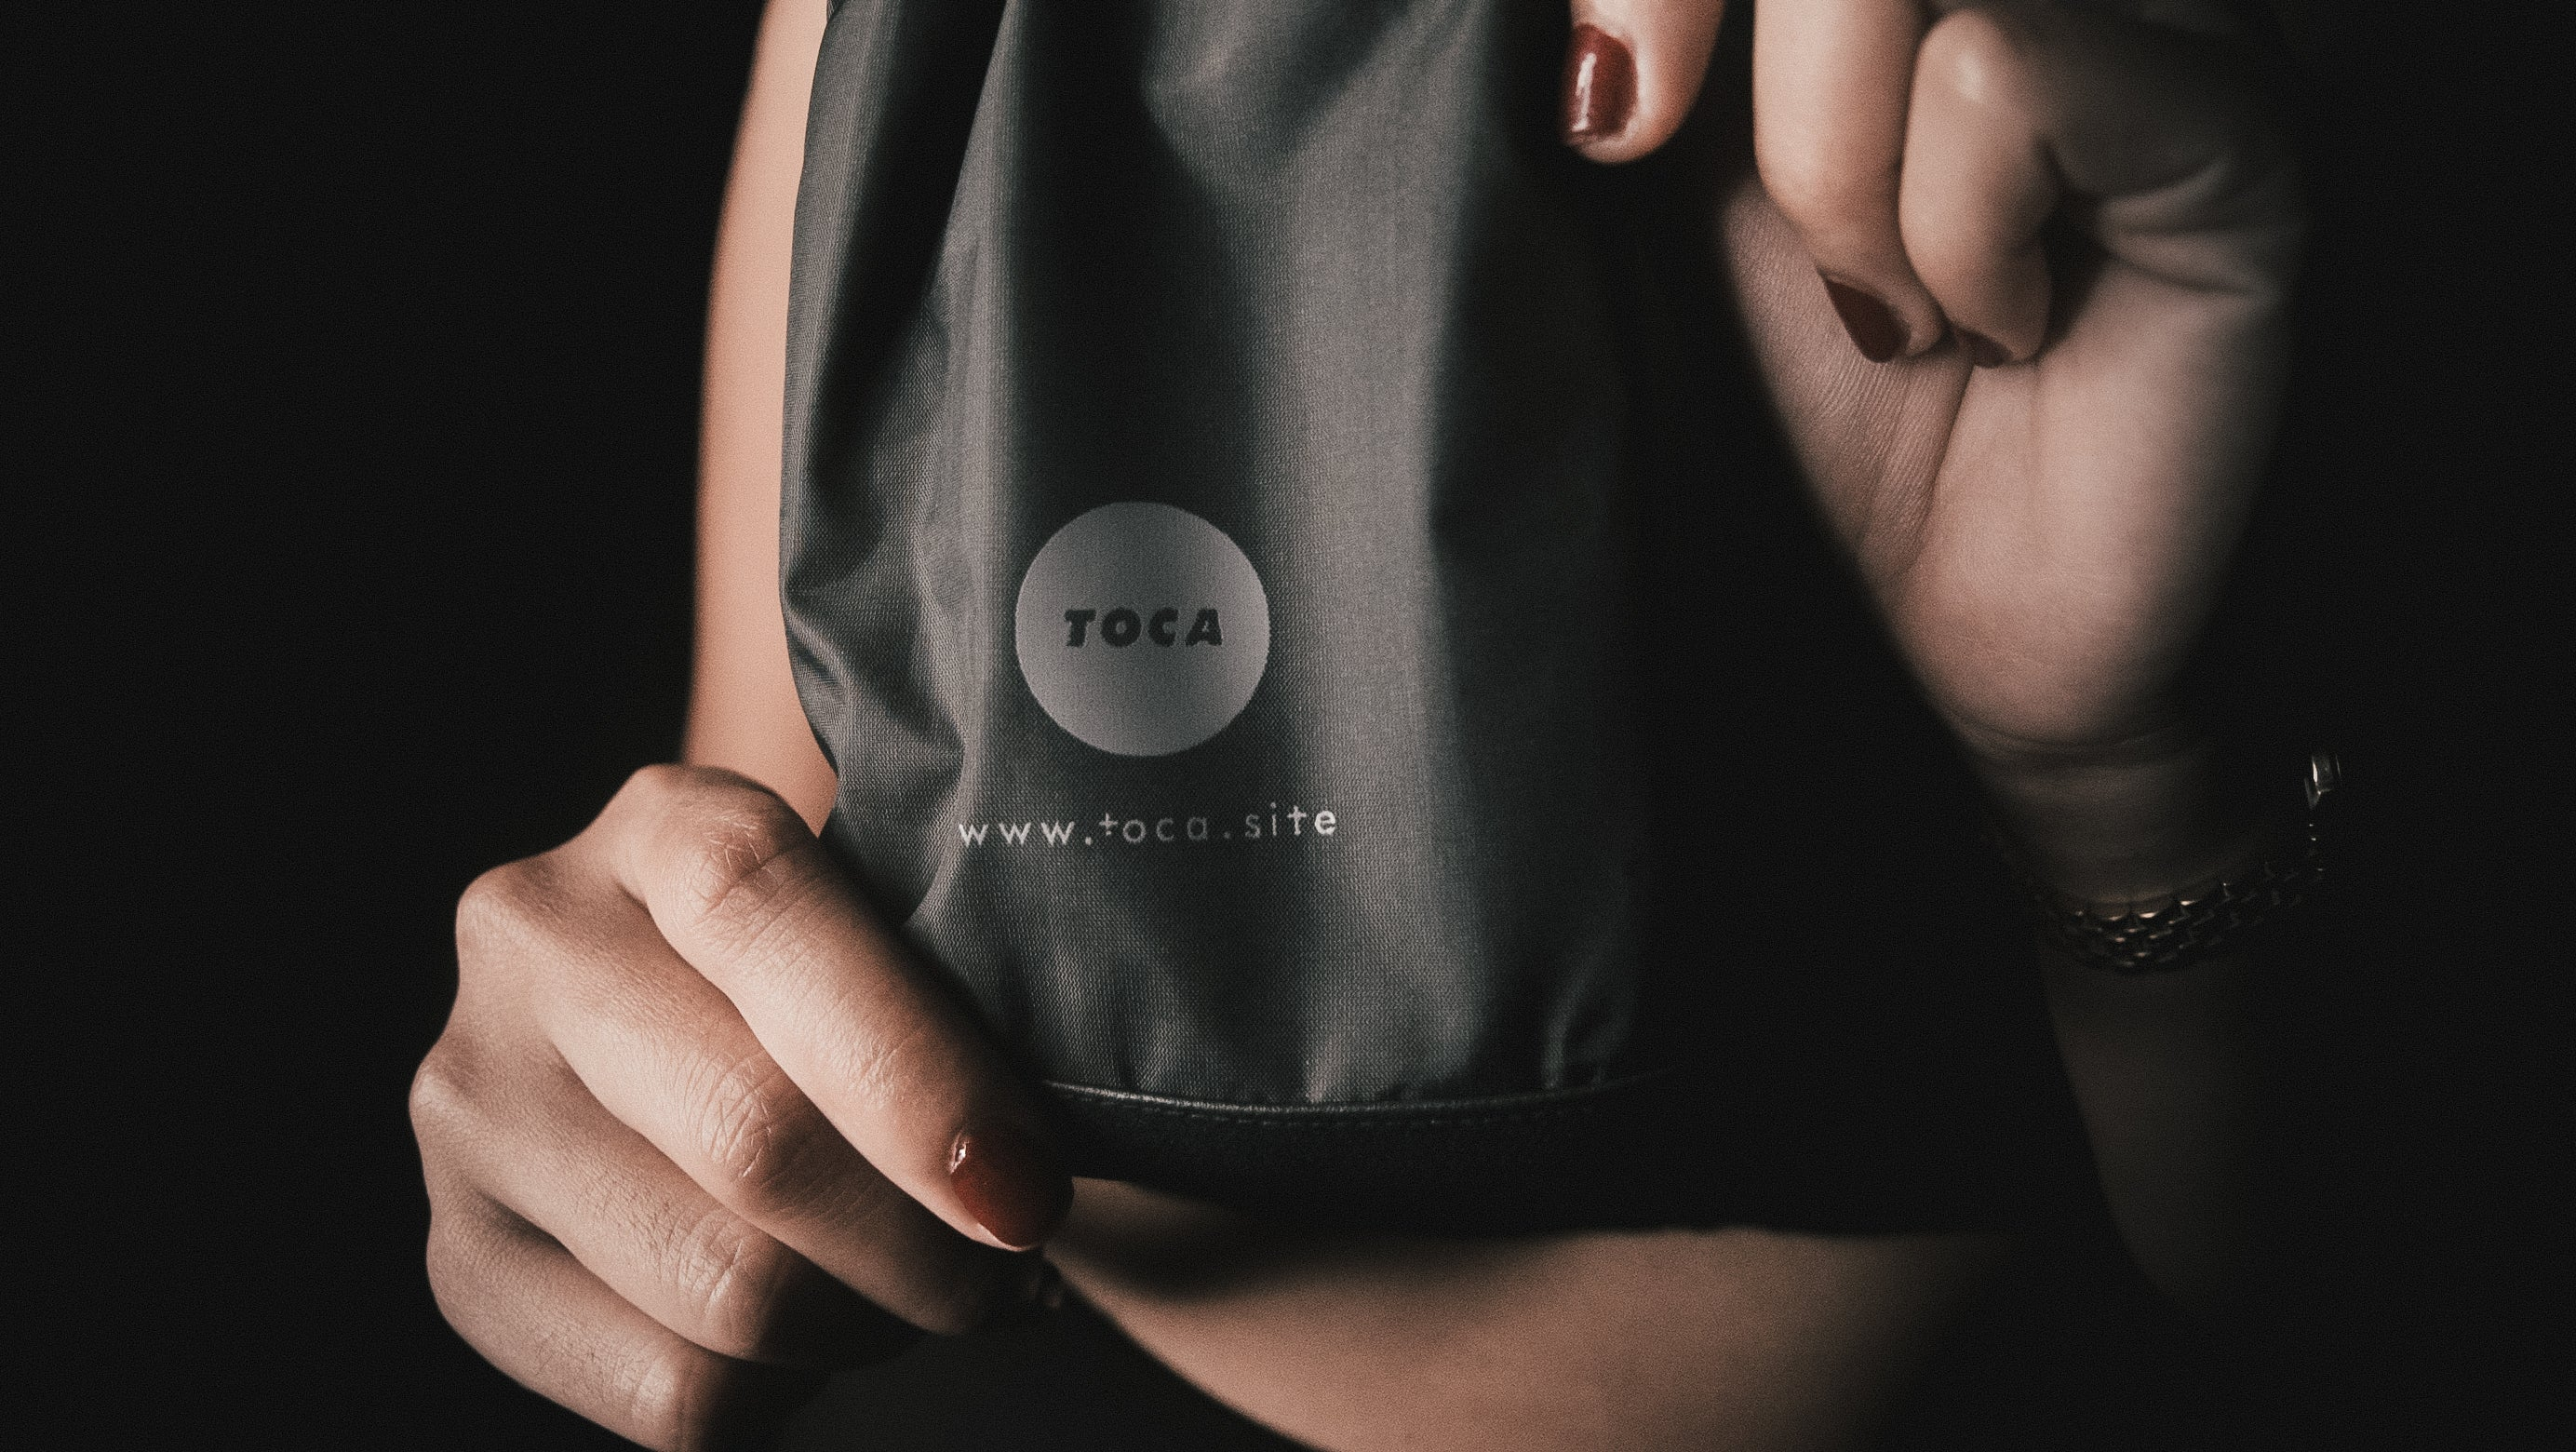 TOCA® Anti-surveillance No Signal smartphone sleeve (limited edition)